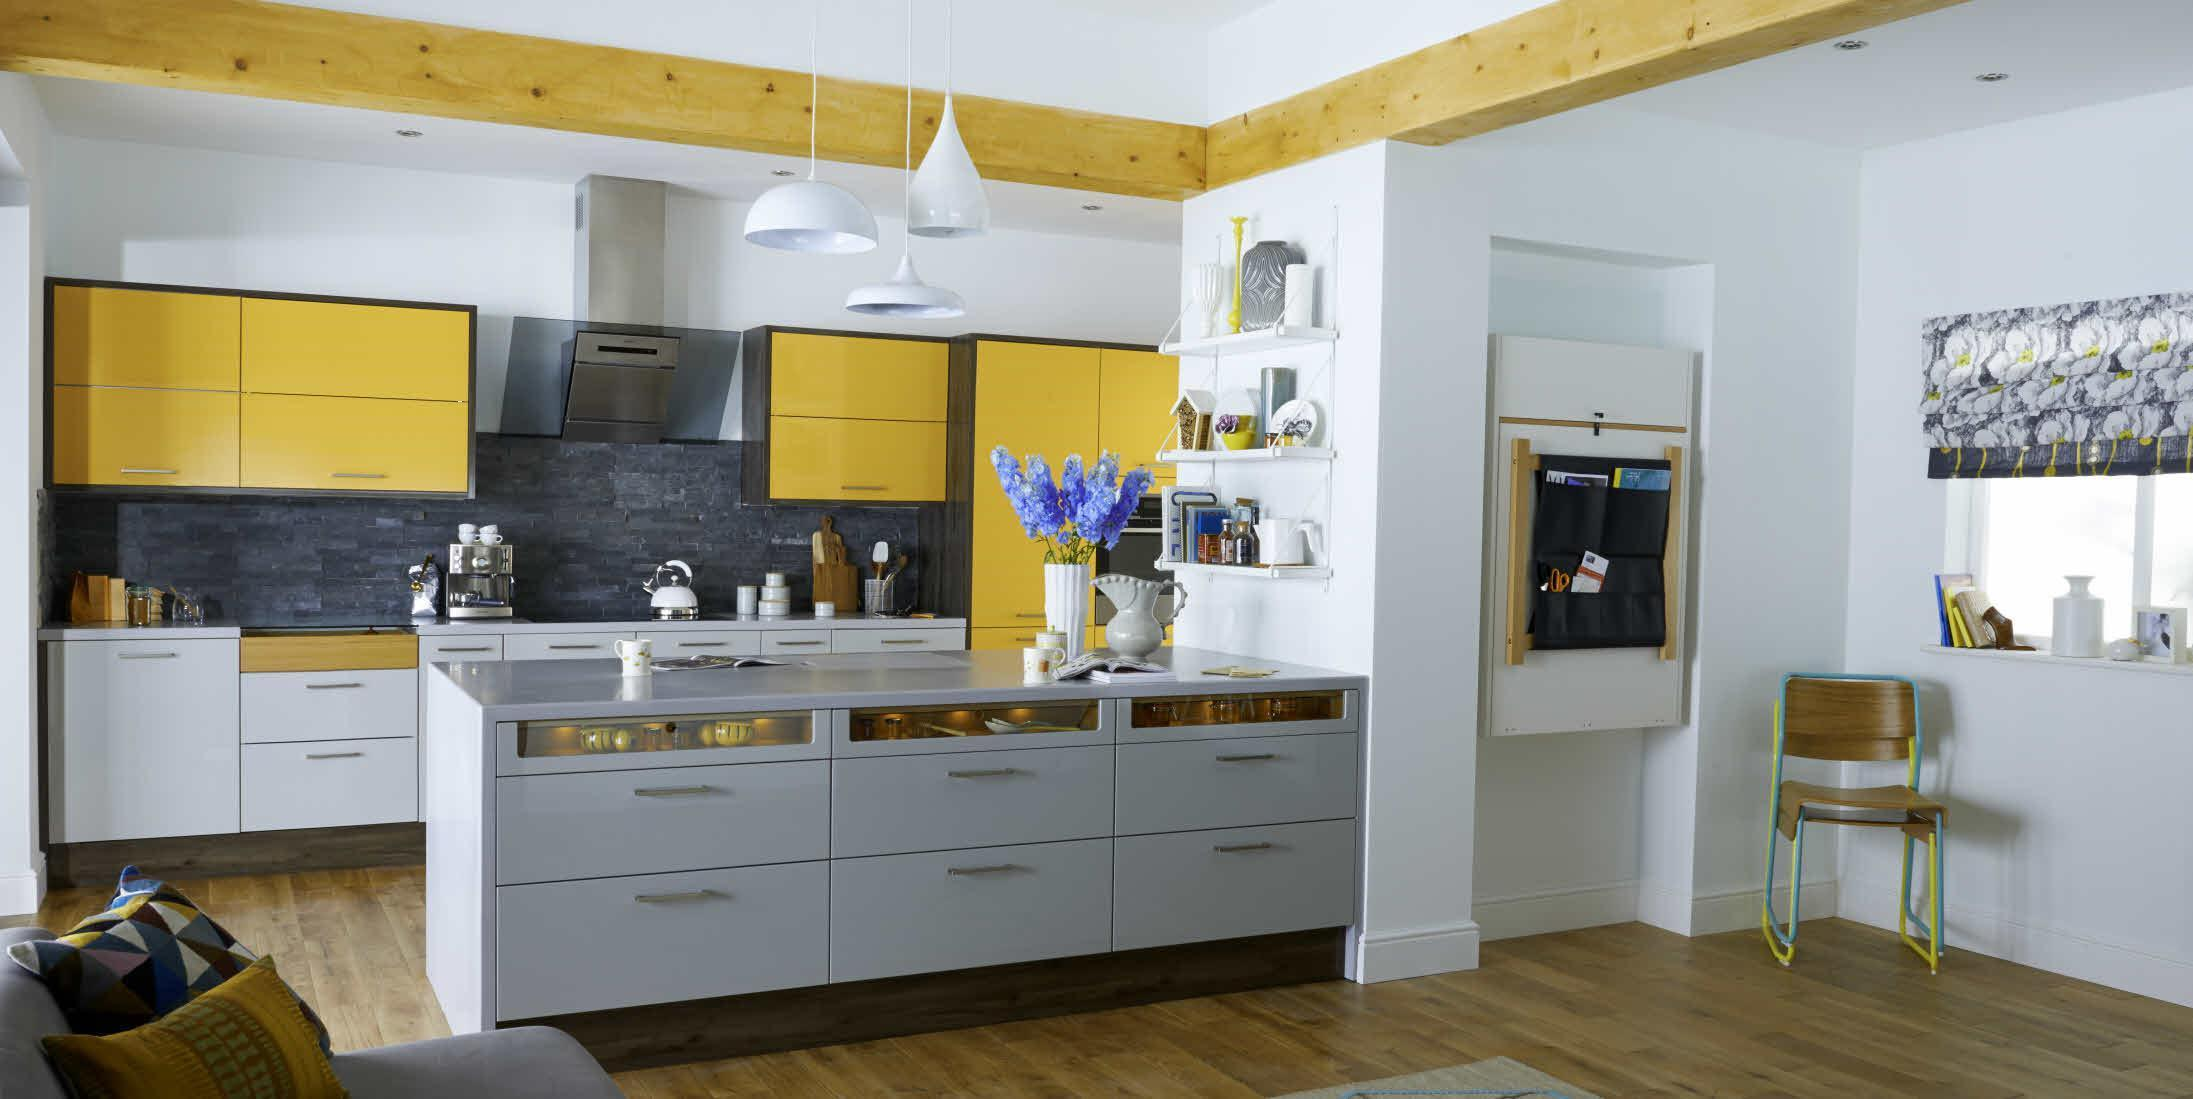 Grey yellow kitchen cabinets